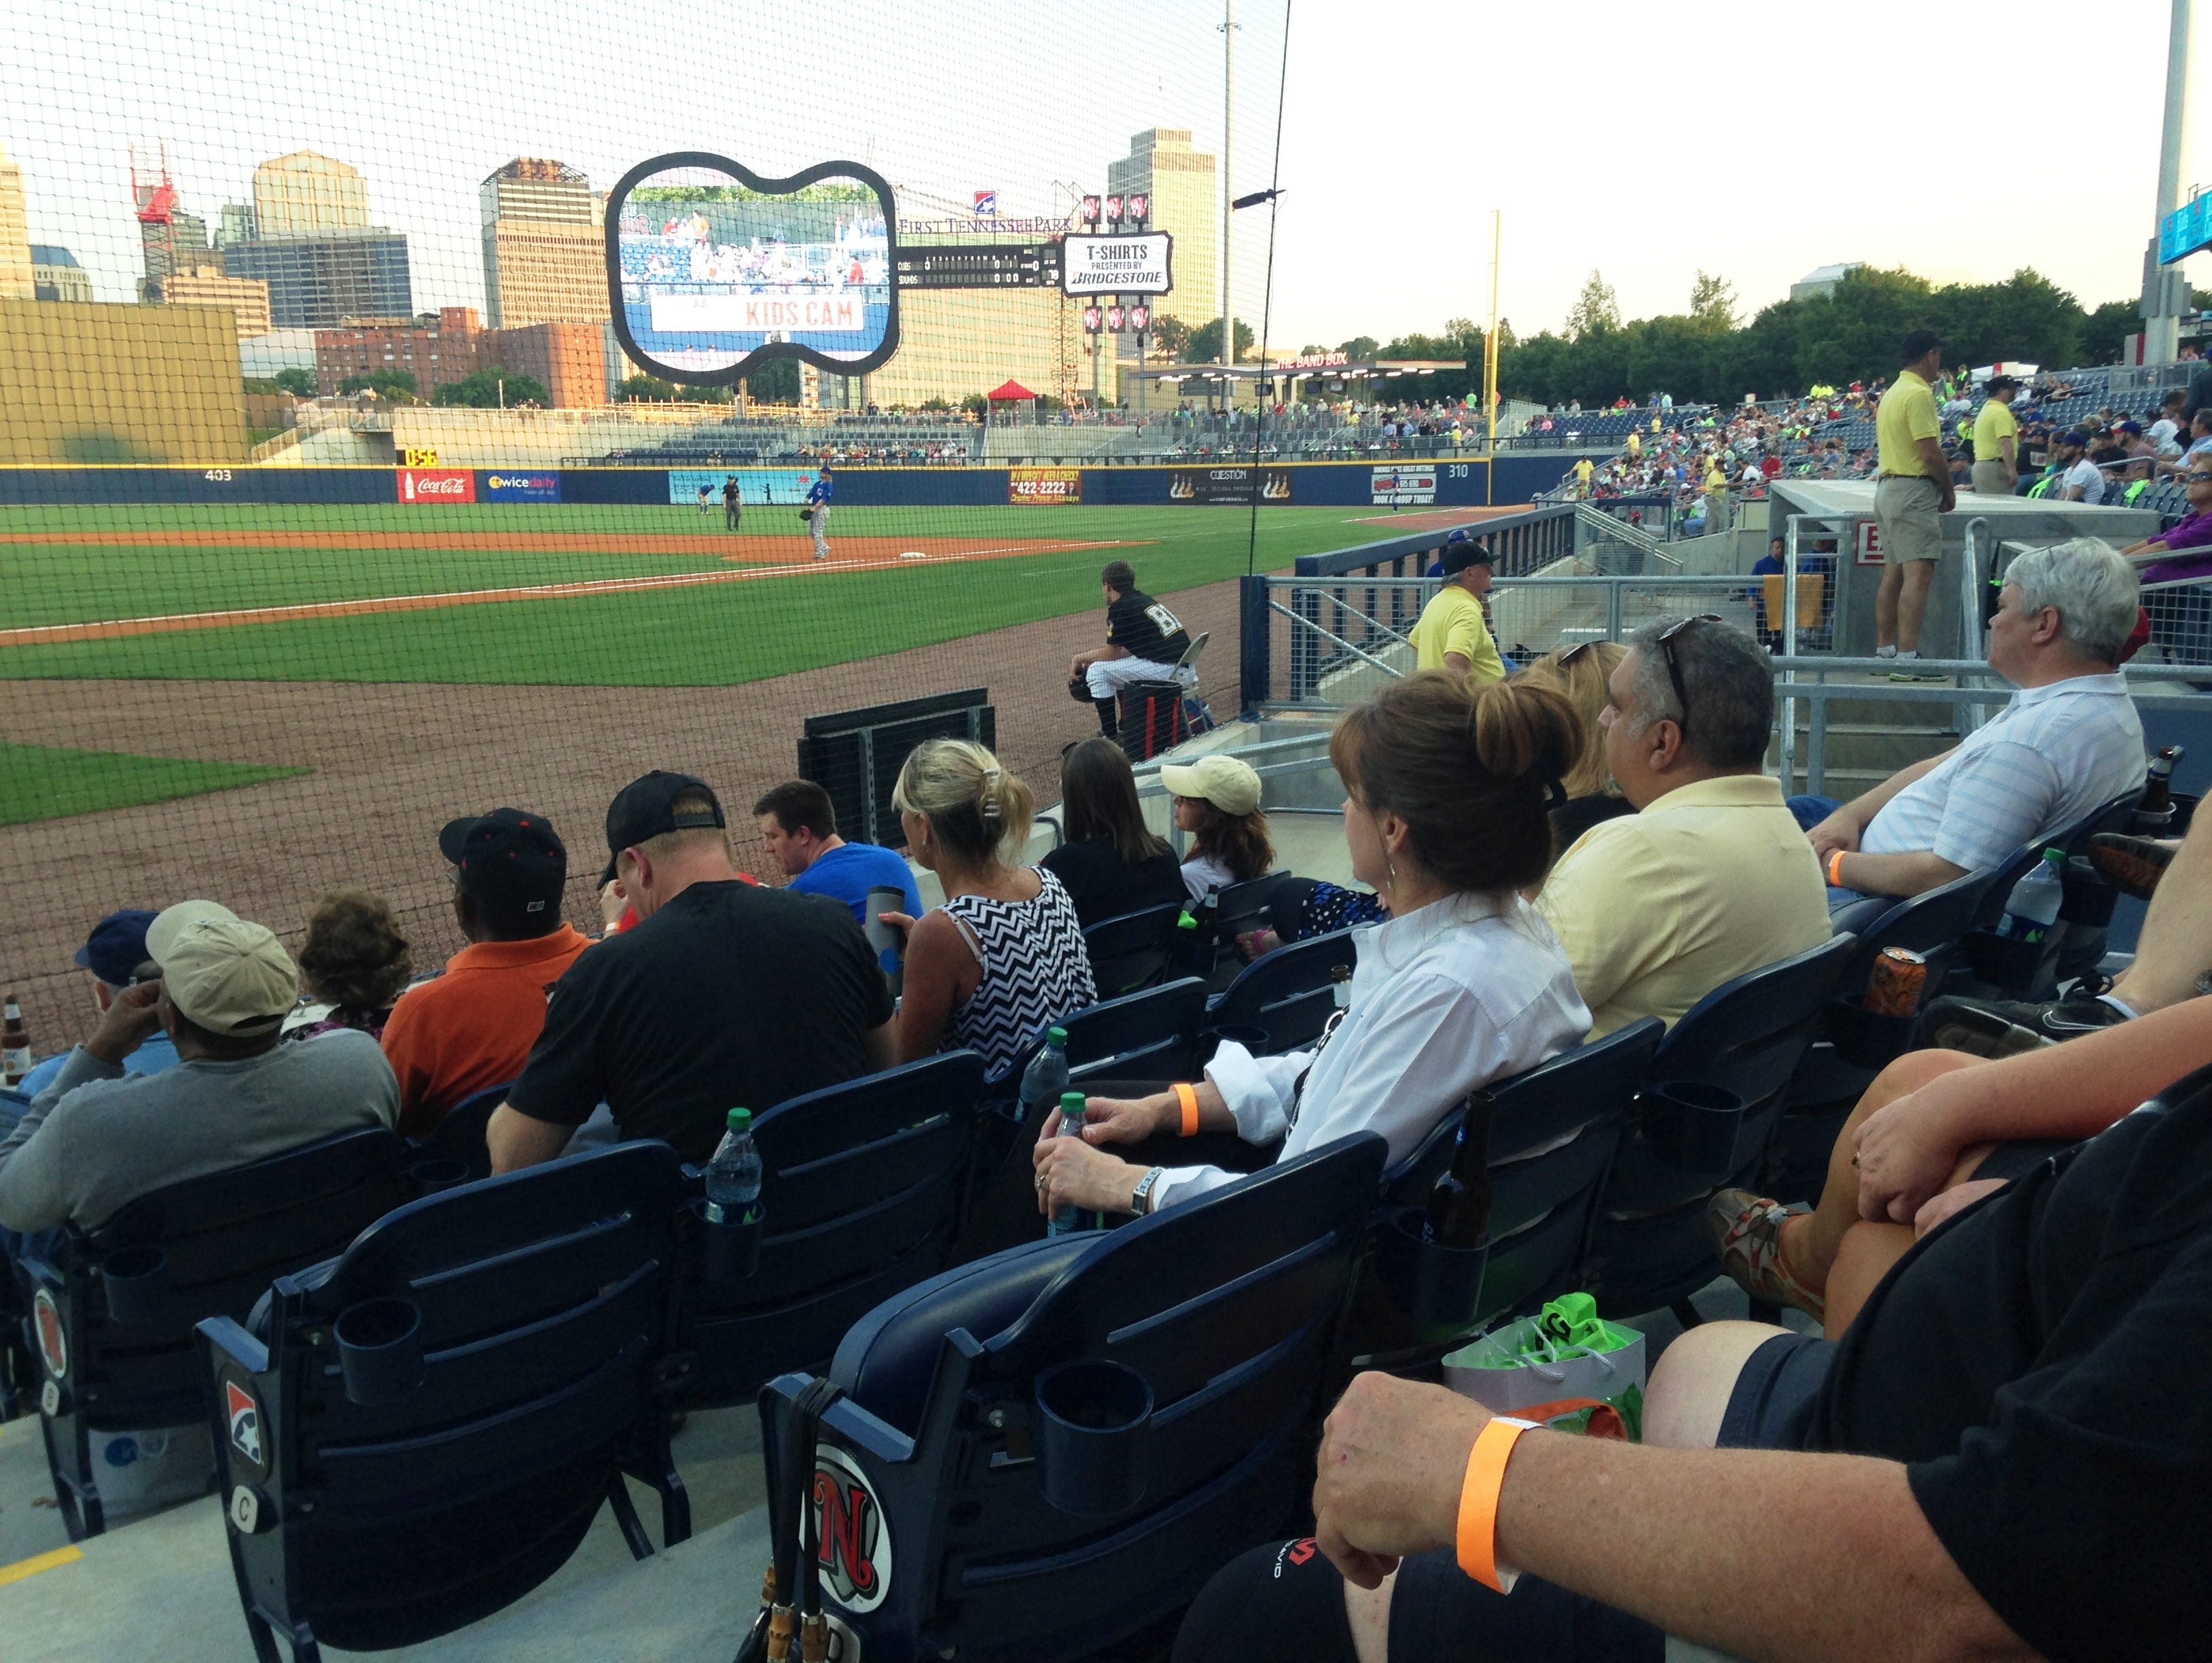 We're hosting 40 Insiders for a VIP night at the First Tennessee Park at Sounds vs. Omaha. Enter to win by July 5th!